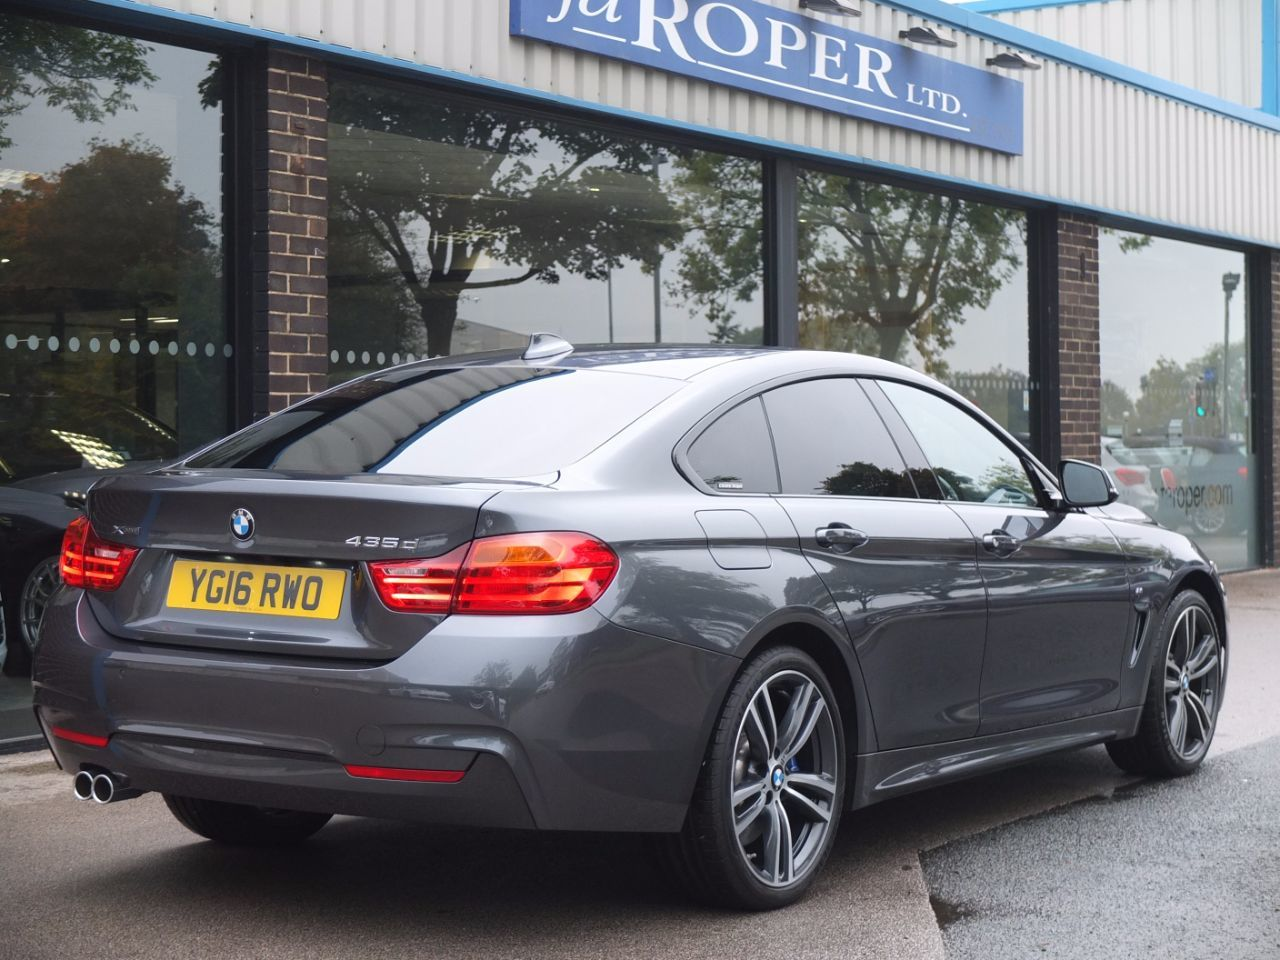 used bmw 4 series 435d xdrive m sport gran coupe auto pro media m sport plus pack for sale. Black Bedroom Furniture Sets. Home Design Ideas